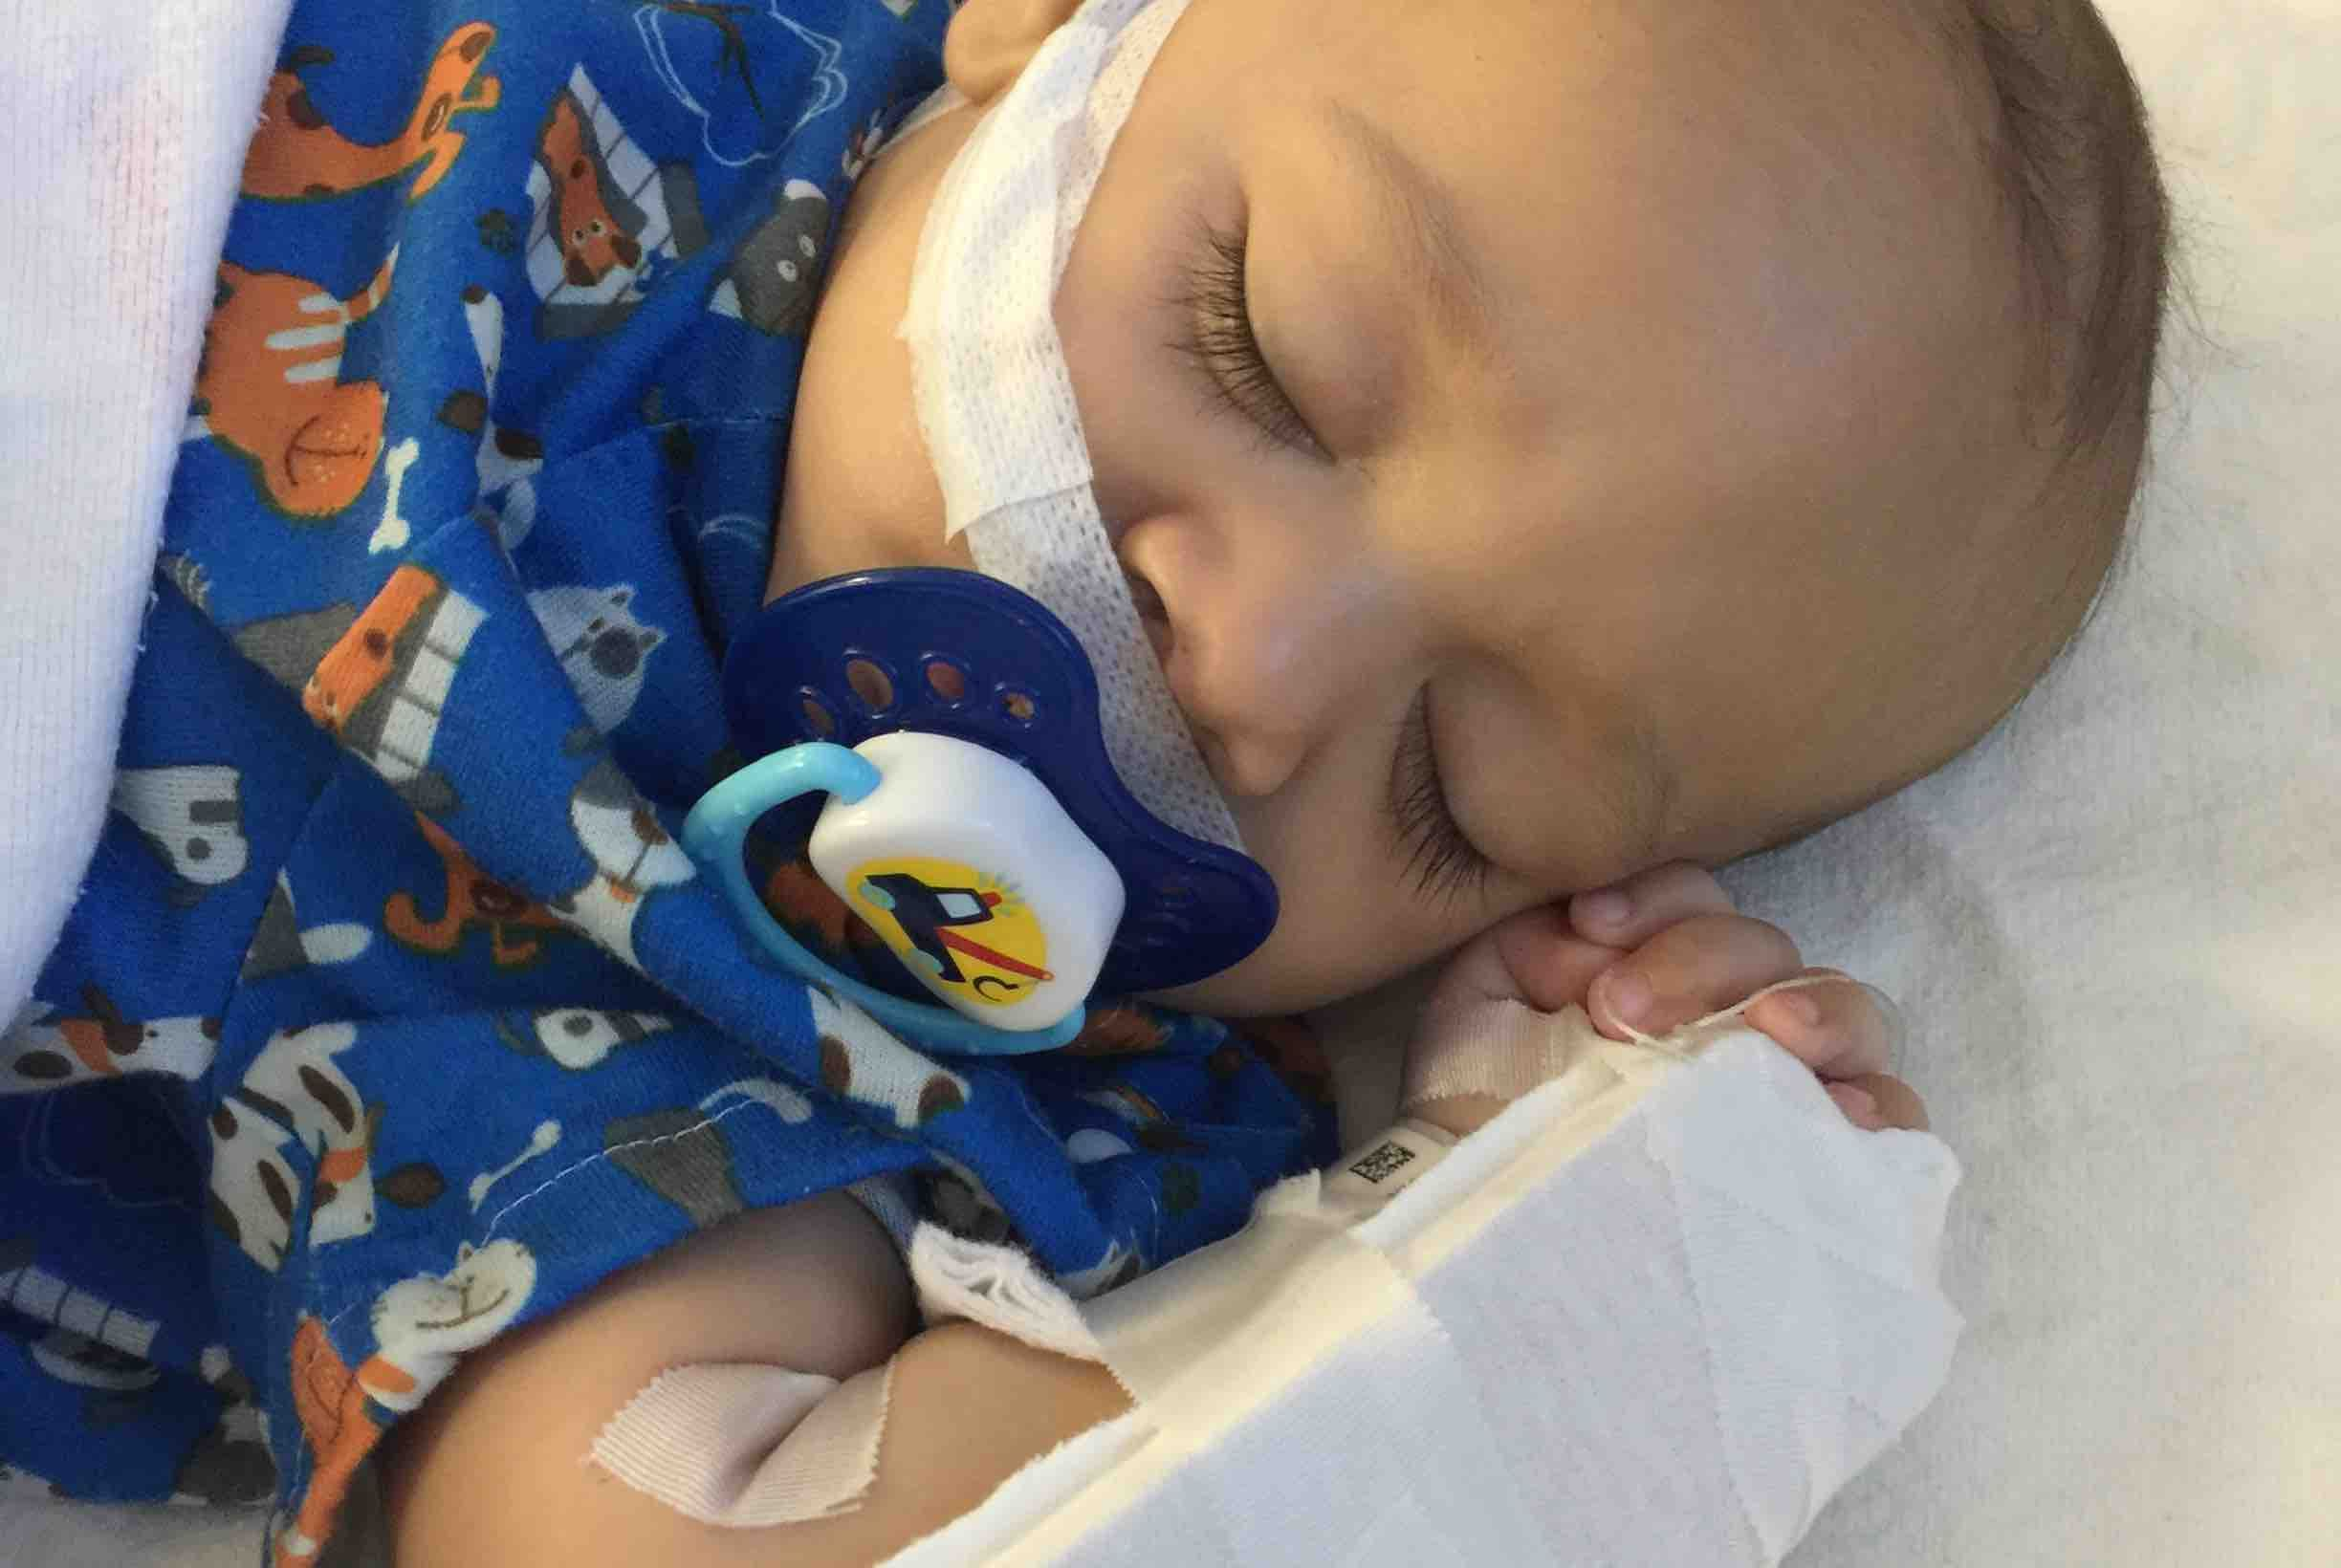 Hi guys i have a little boy named jace. Jace is 6 months old and was born a month and a half early. He was taken from me and moved to a hospital 2 hours away at birth where they figured out he has Hirschsprung's disease. He has already had 2 surgeries by the time he was 4 months old. He is a Hirs...